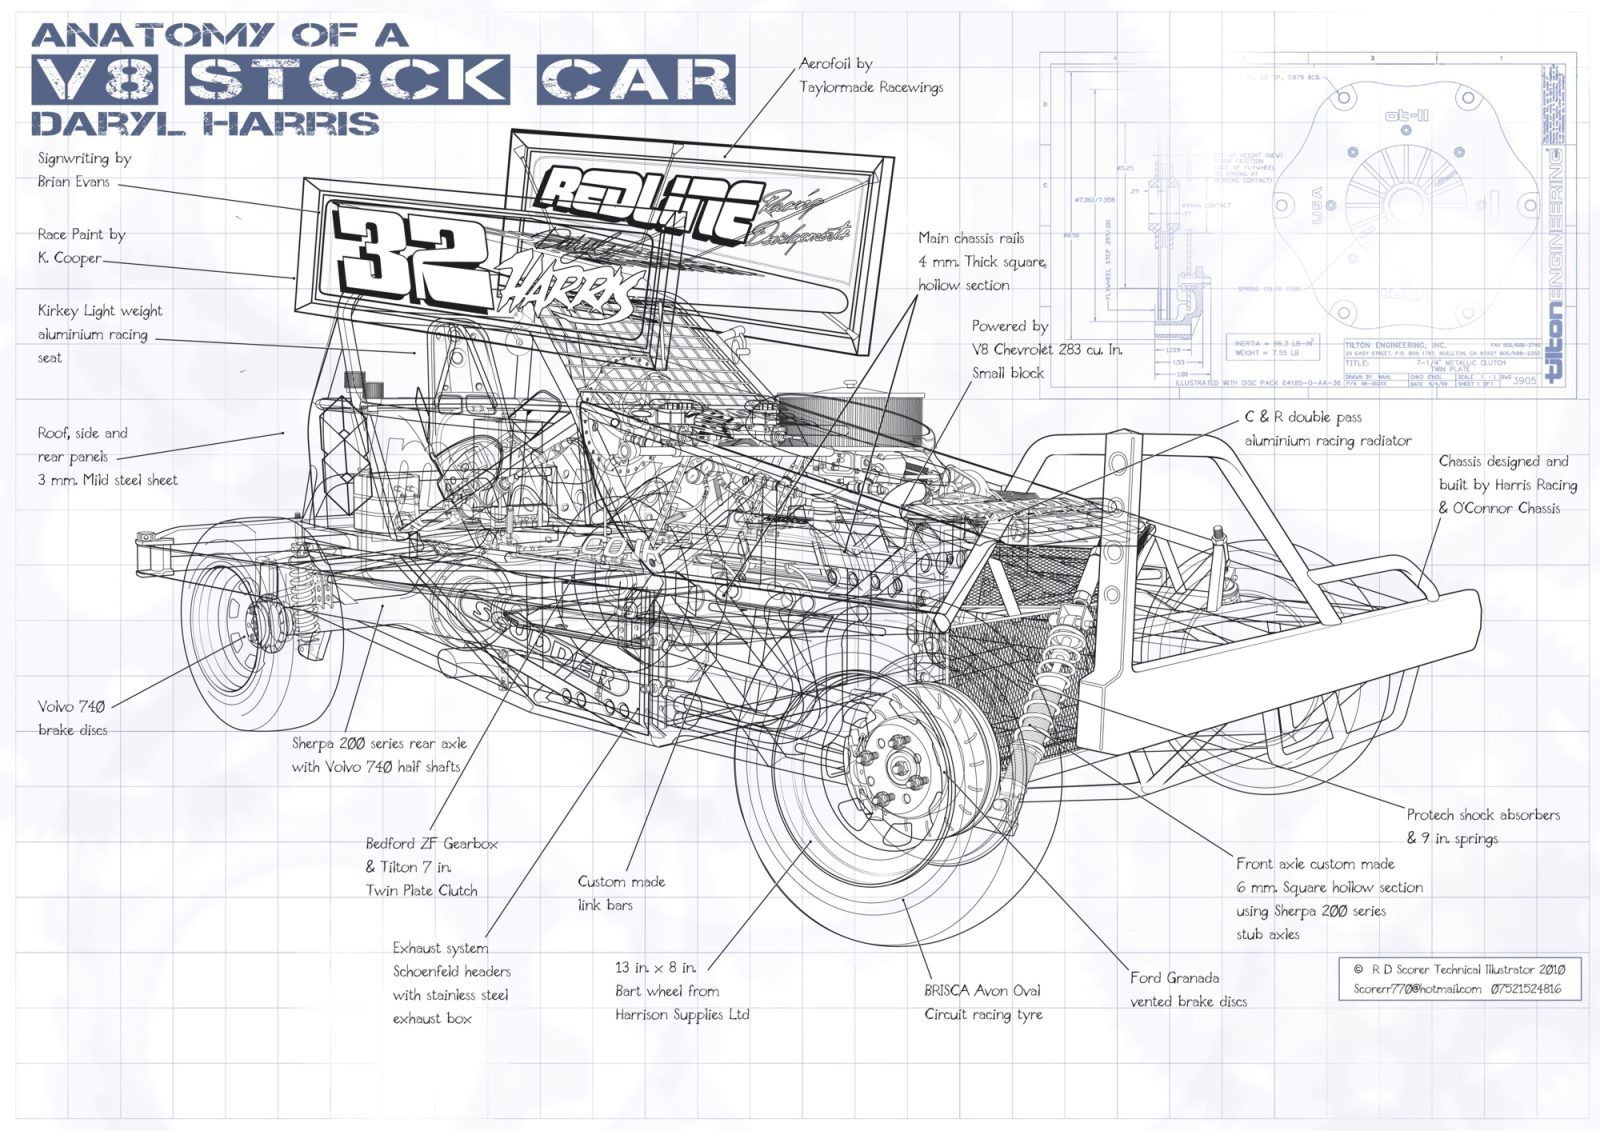 Roy Scorer is one of the world's leading technical illustrators, with his work regularly featured in Haynes Manuals, including the manuals on the Bismarck battleship, the Lotus 98T Formula One car, and the German U-Boat (various models). The British Ministry of Defence also employs Roy to create highly detailed technical drawings of various military vehicles...